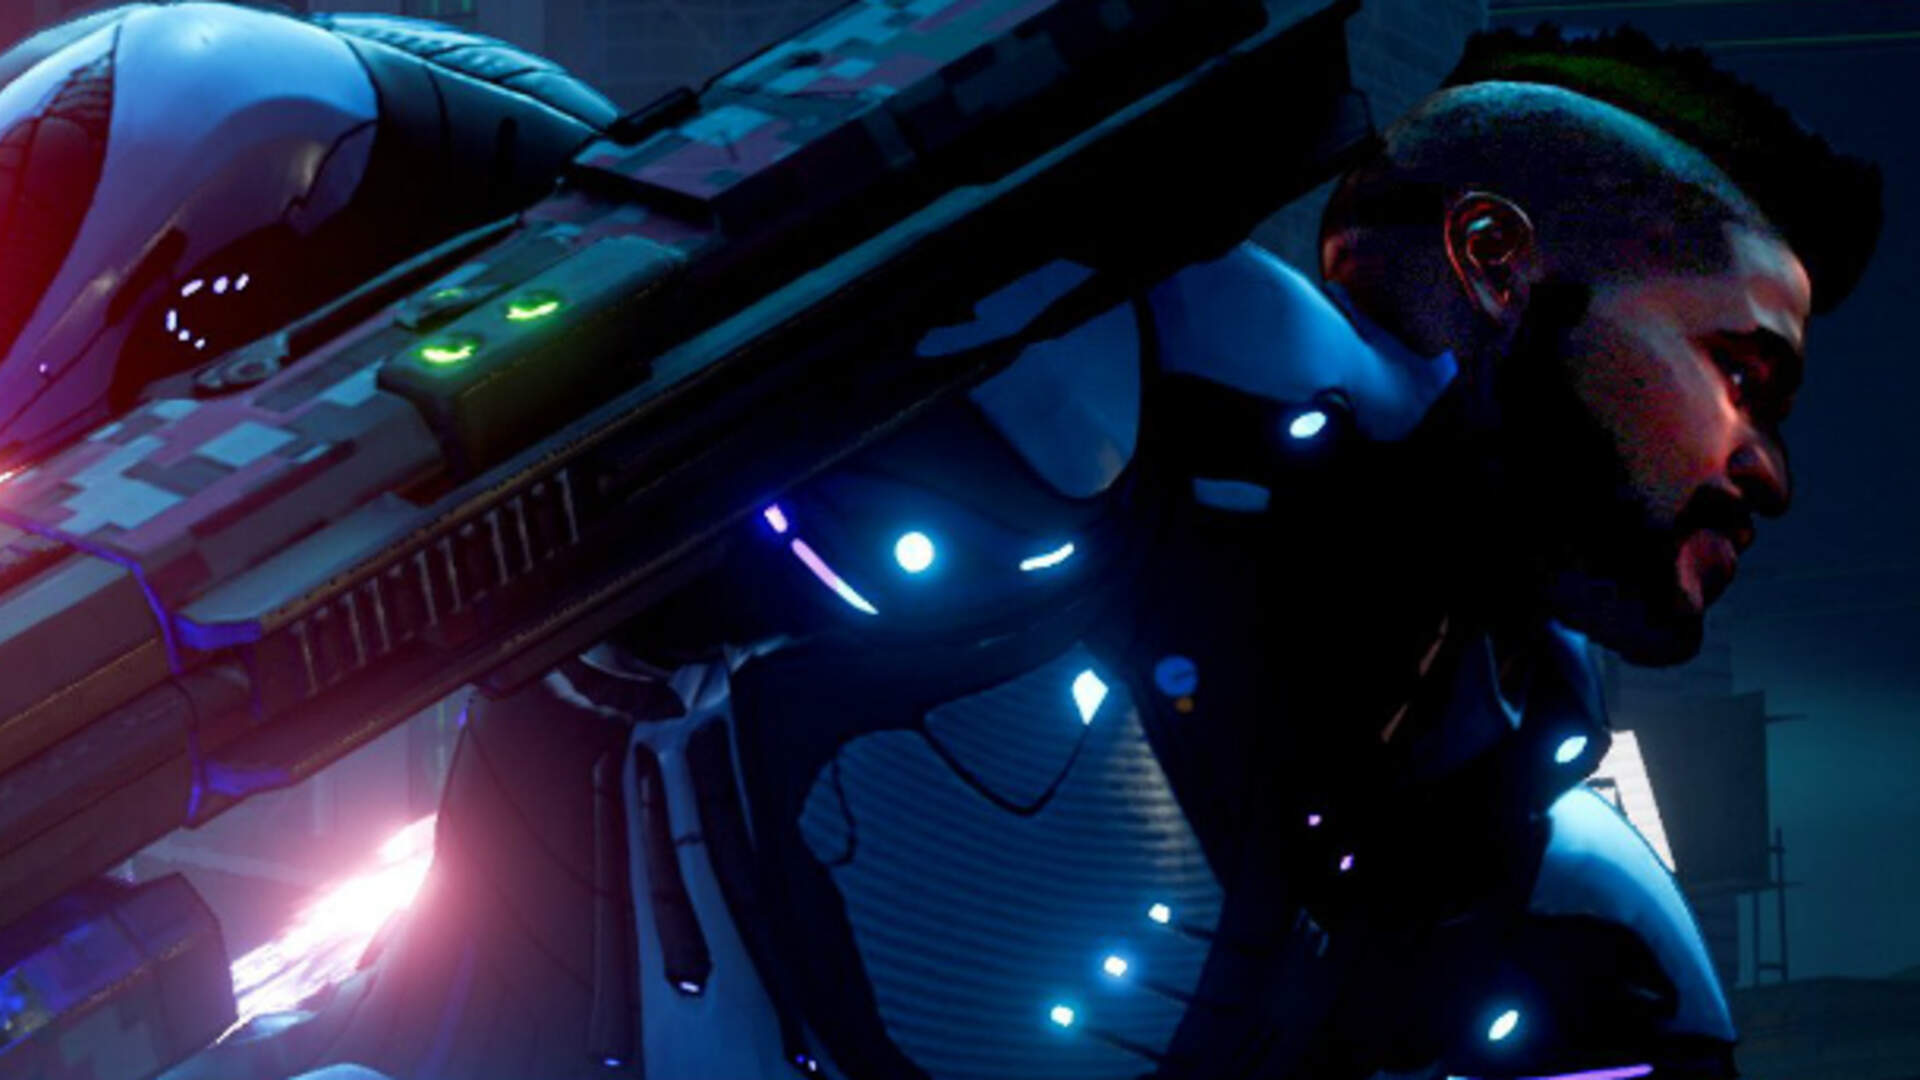 Report: Crackdown 3 Delayed to 2019 [Update: Microsoft Confirms 2019 Delay]